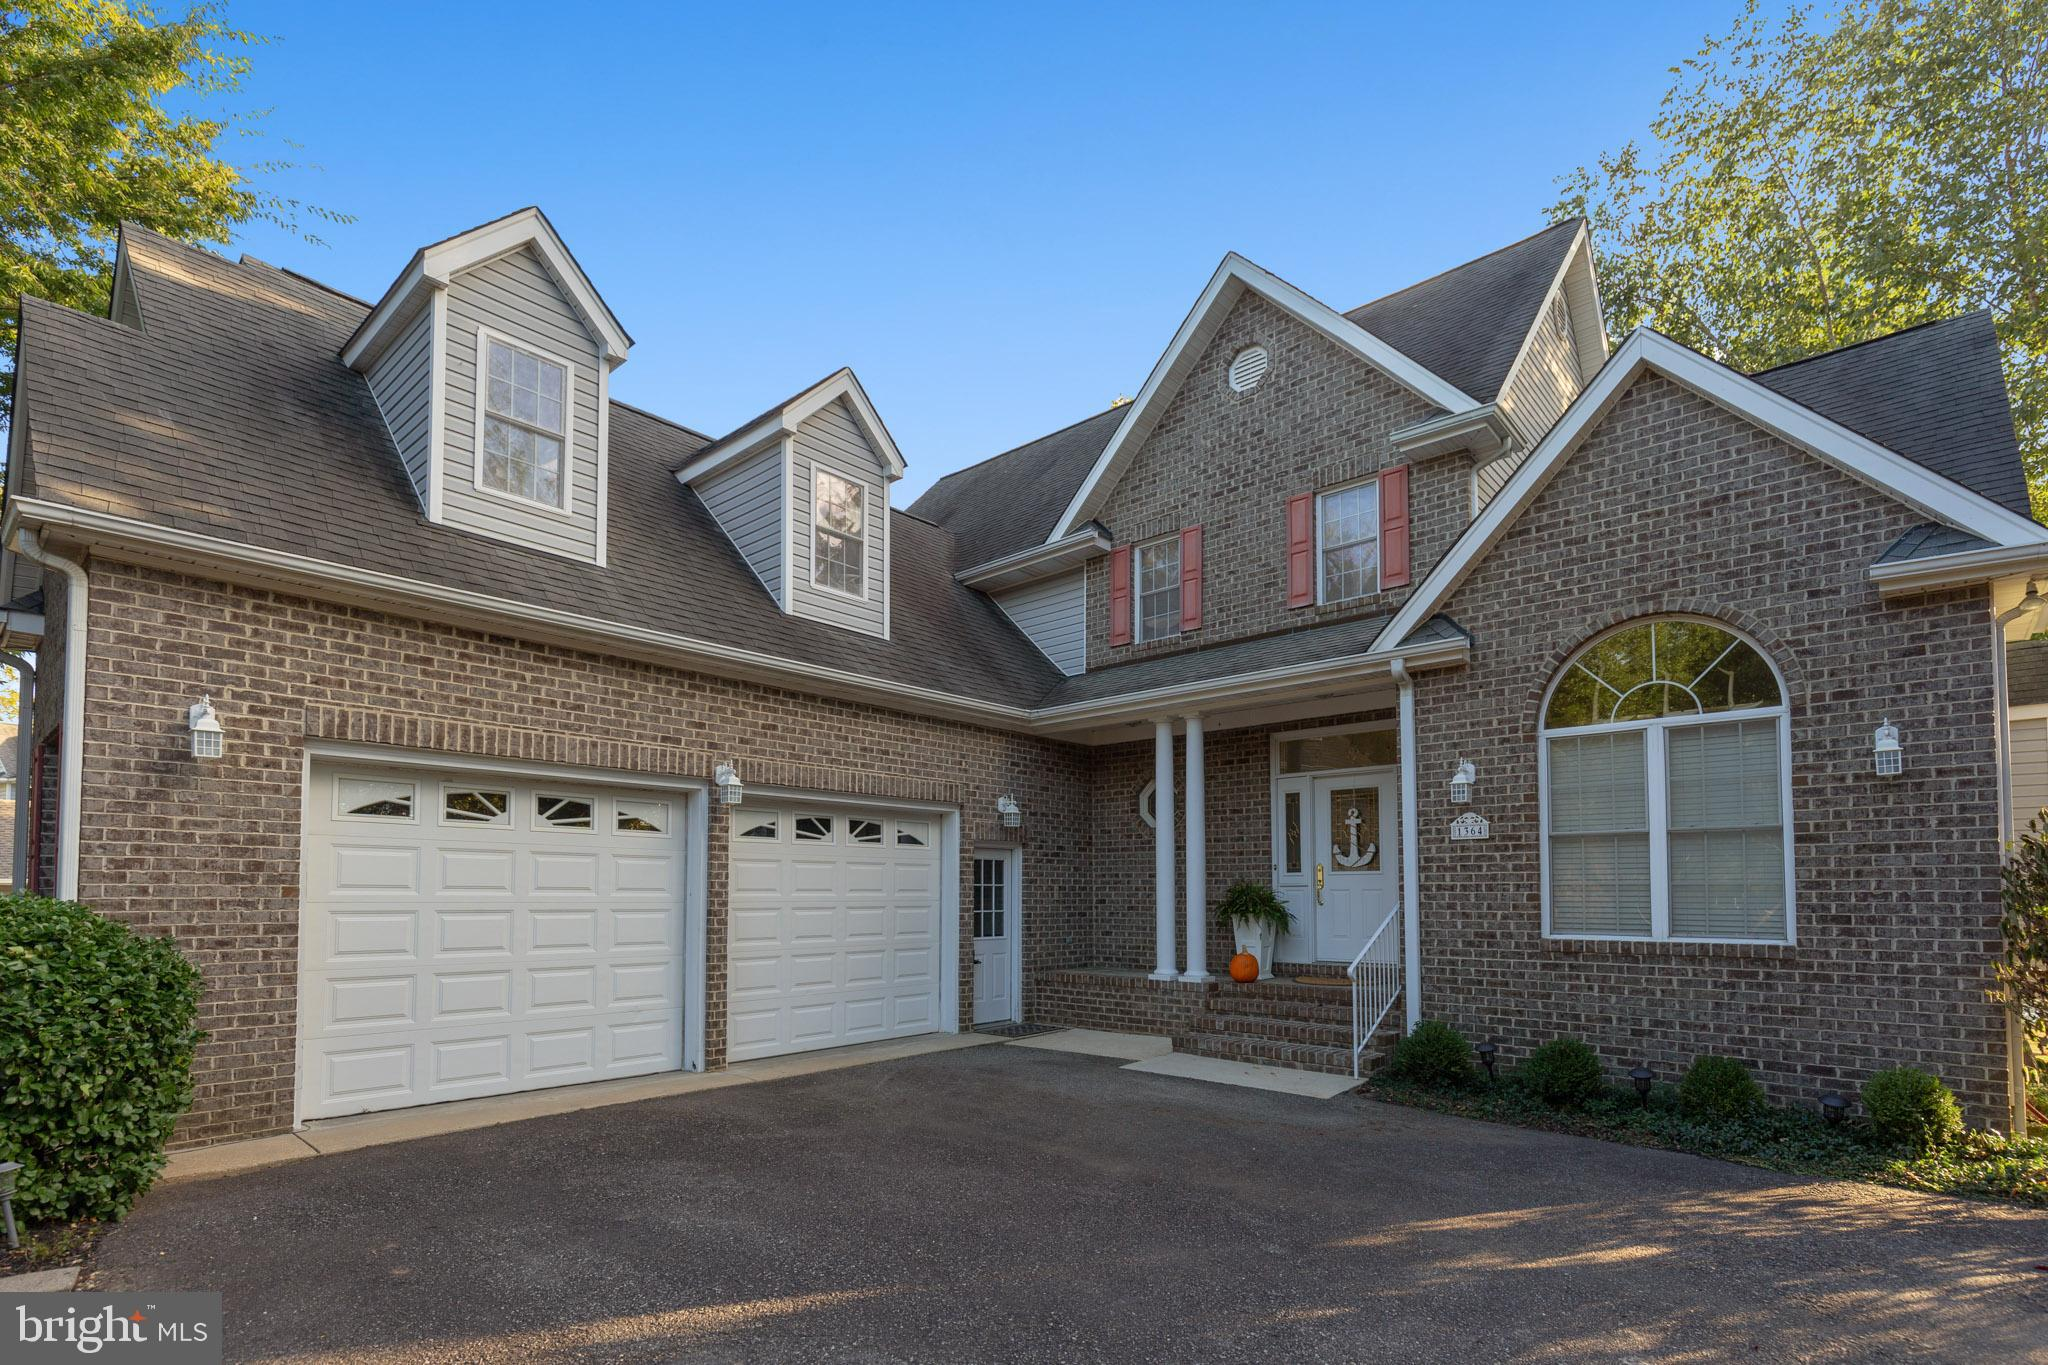 1364 GREGG DRIVE, LUSBY, MD 20657